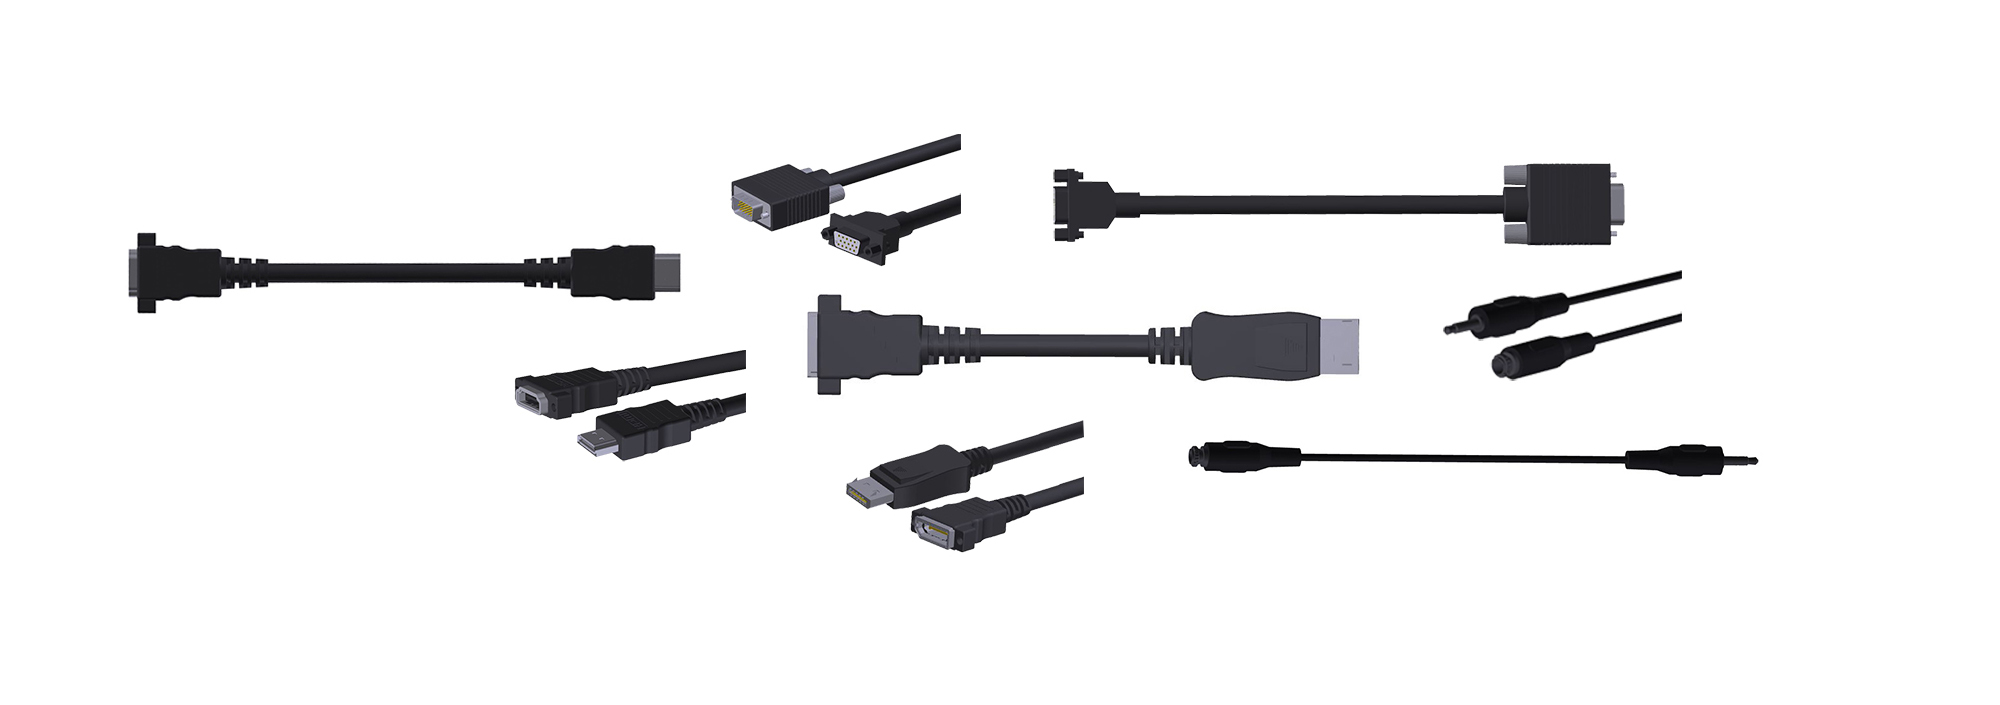 new connection cables